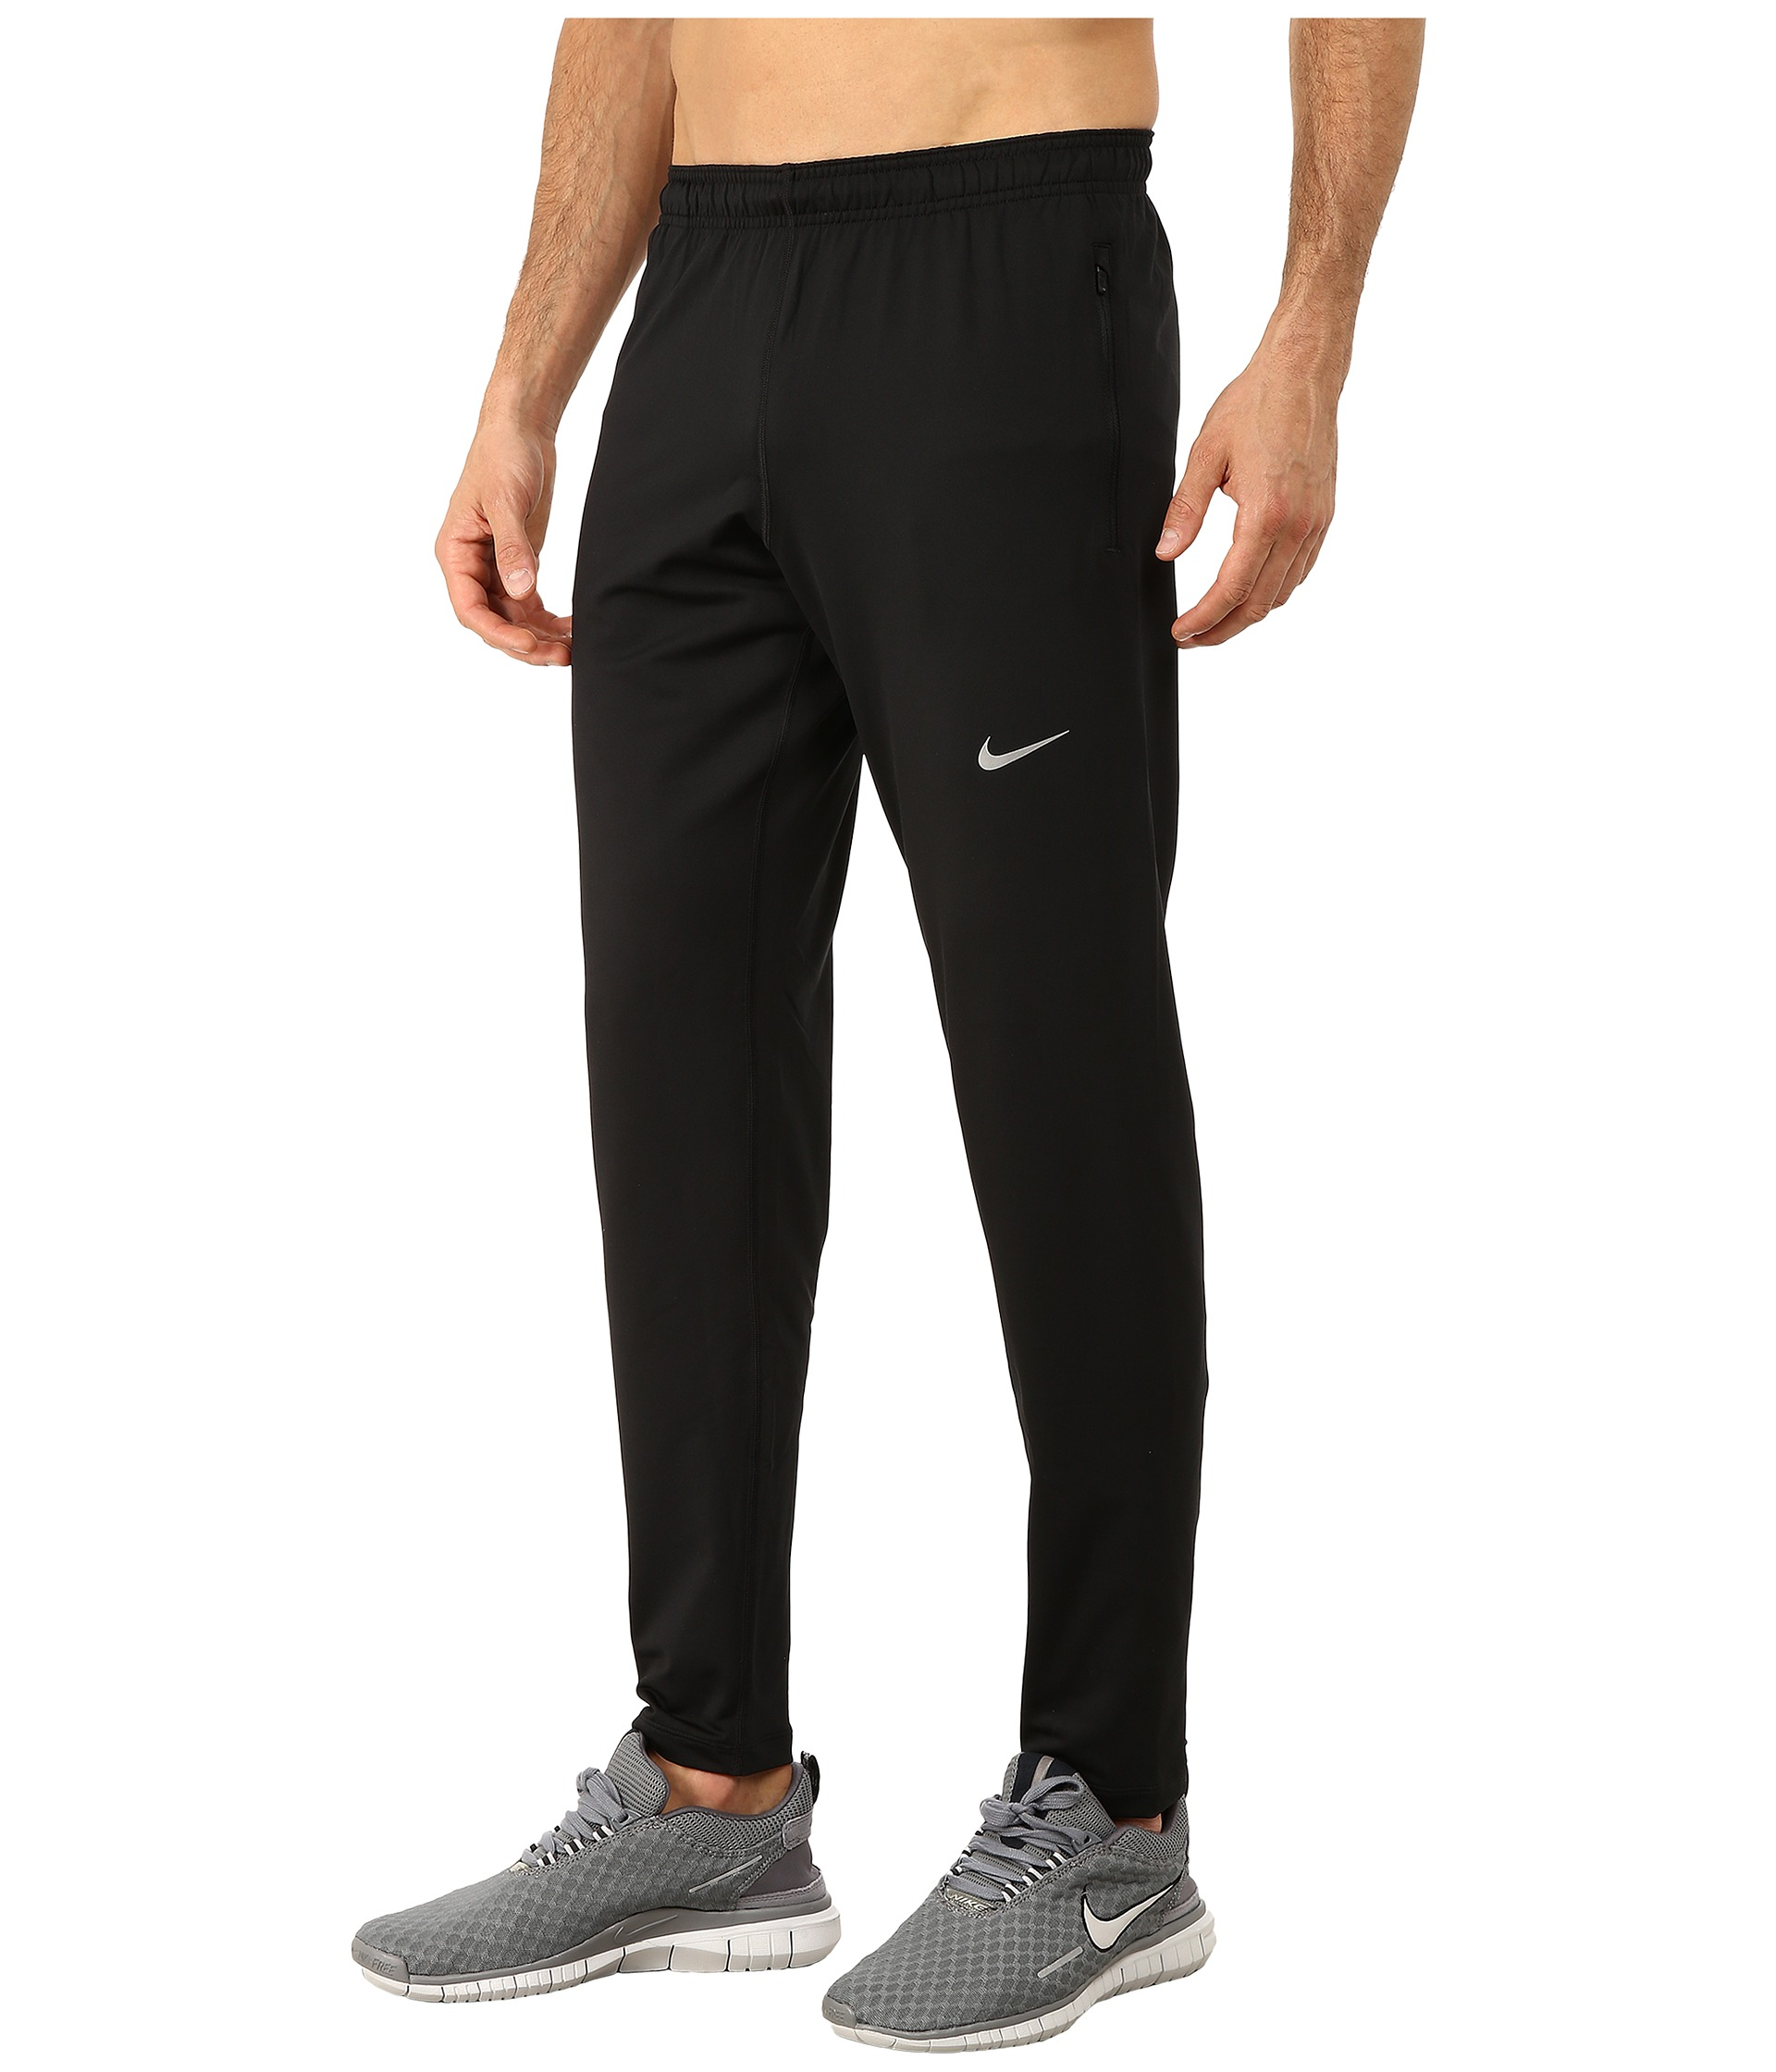 Wonderful Hurley Drifit League Fleece Pants In Black For Men  Lyst